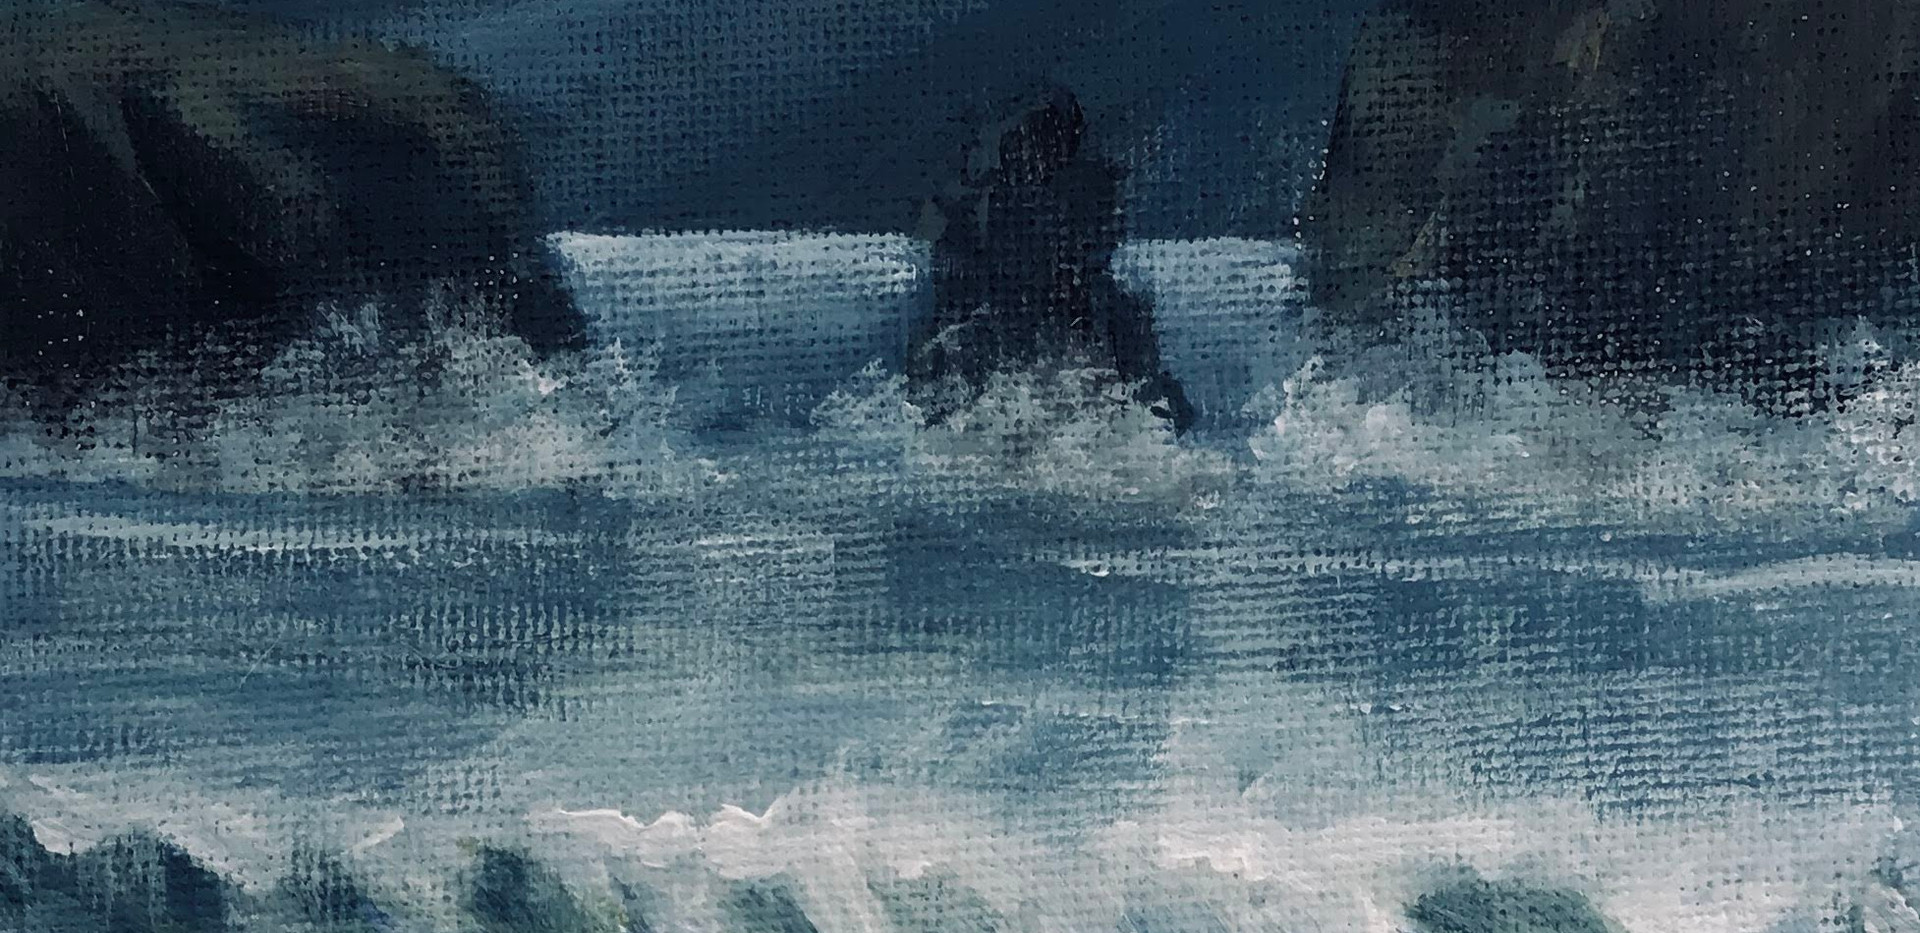 Darkening waves